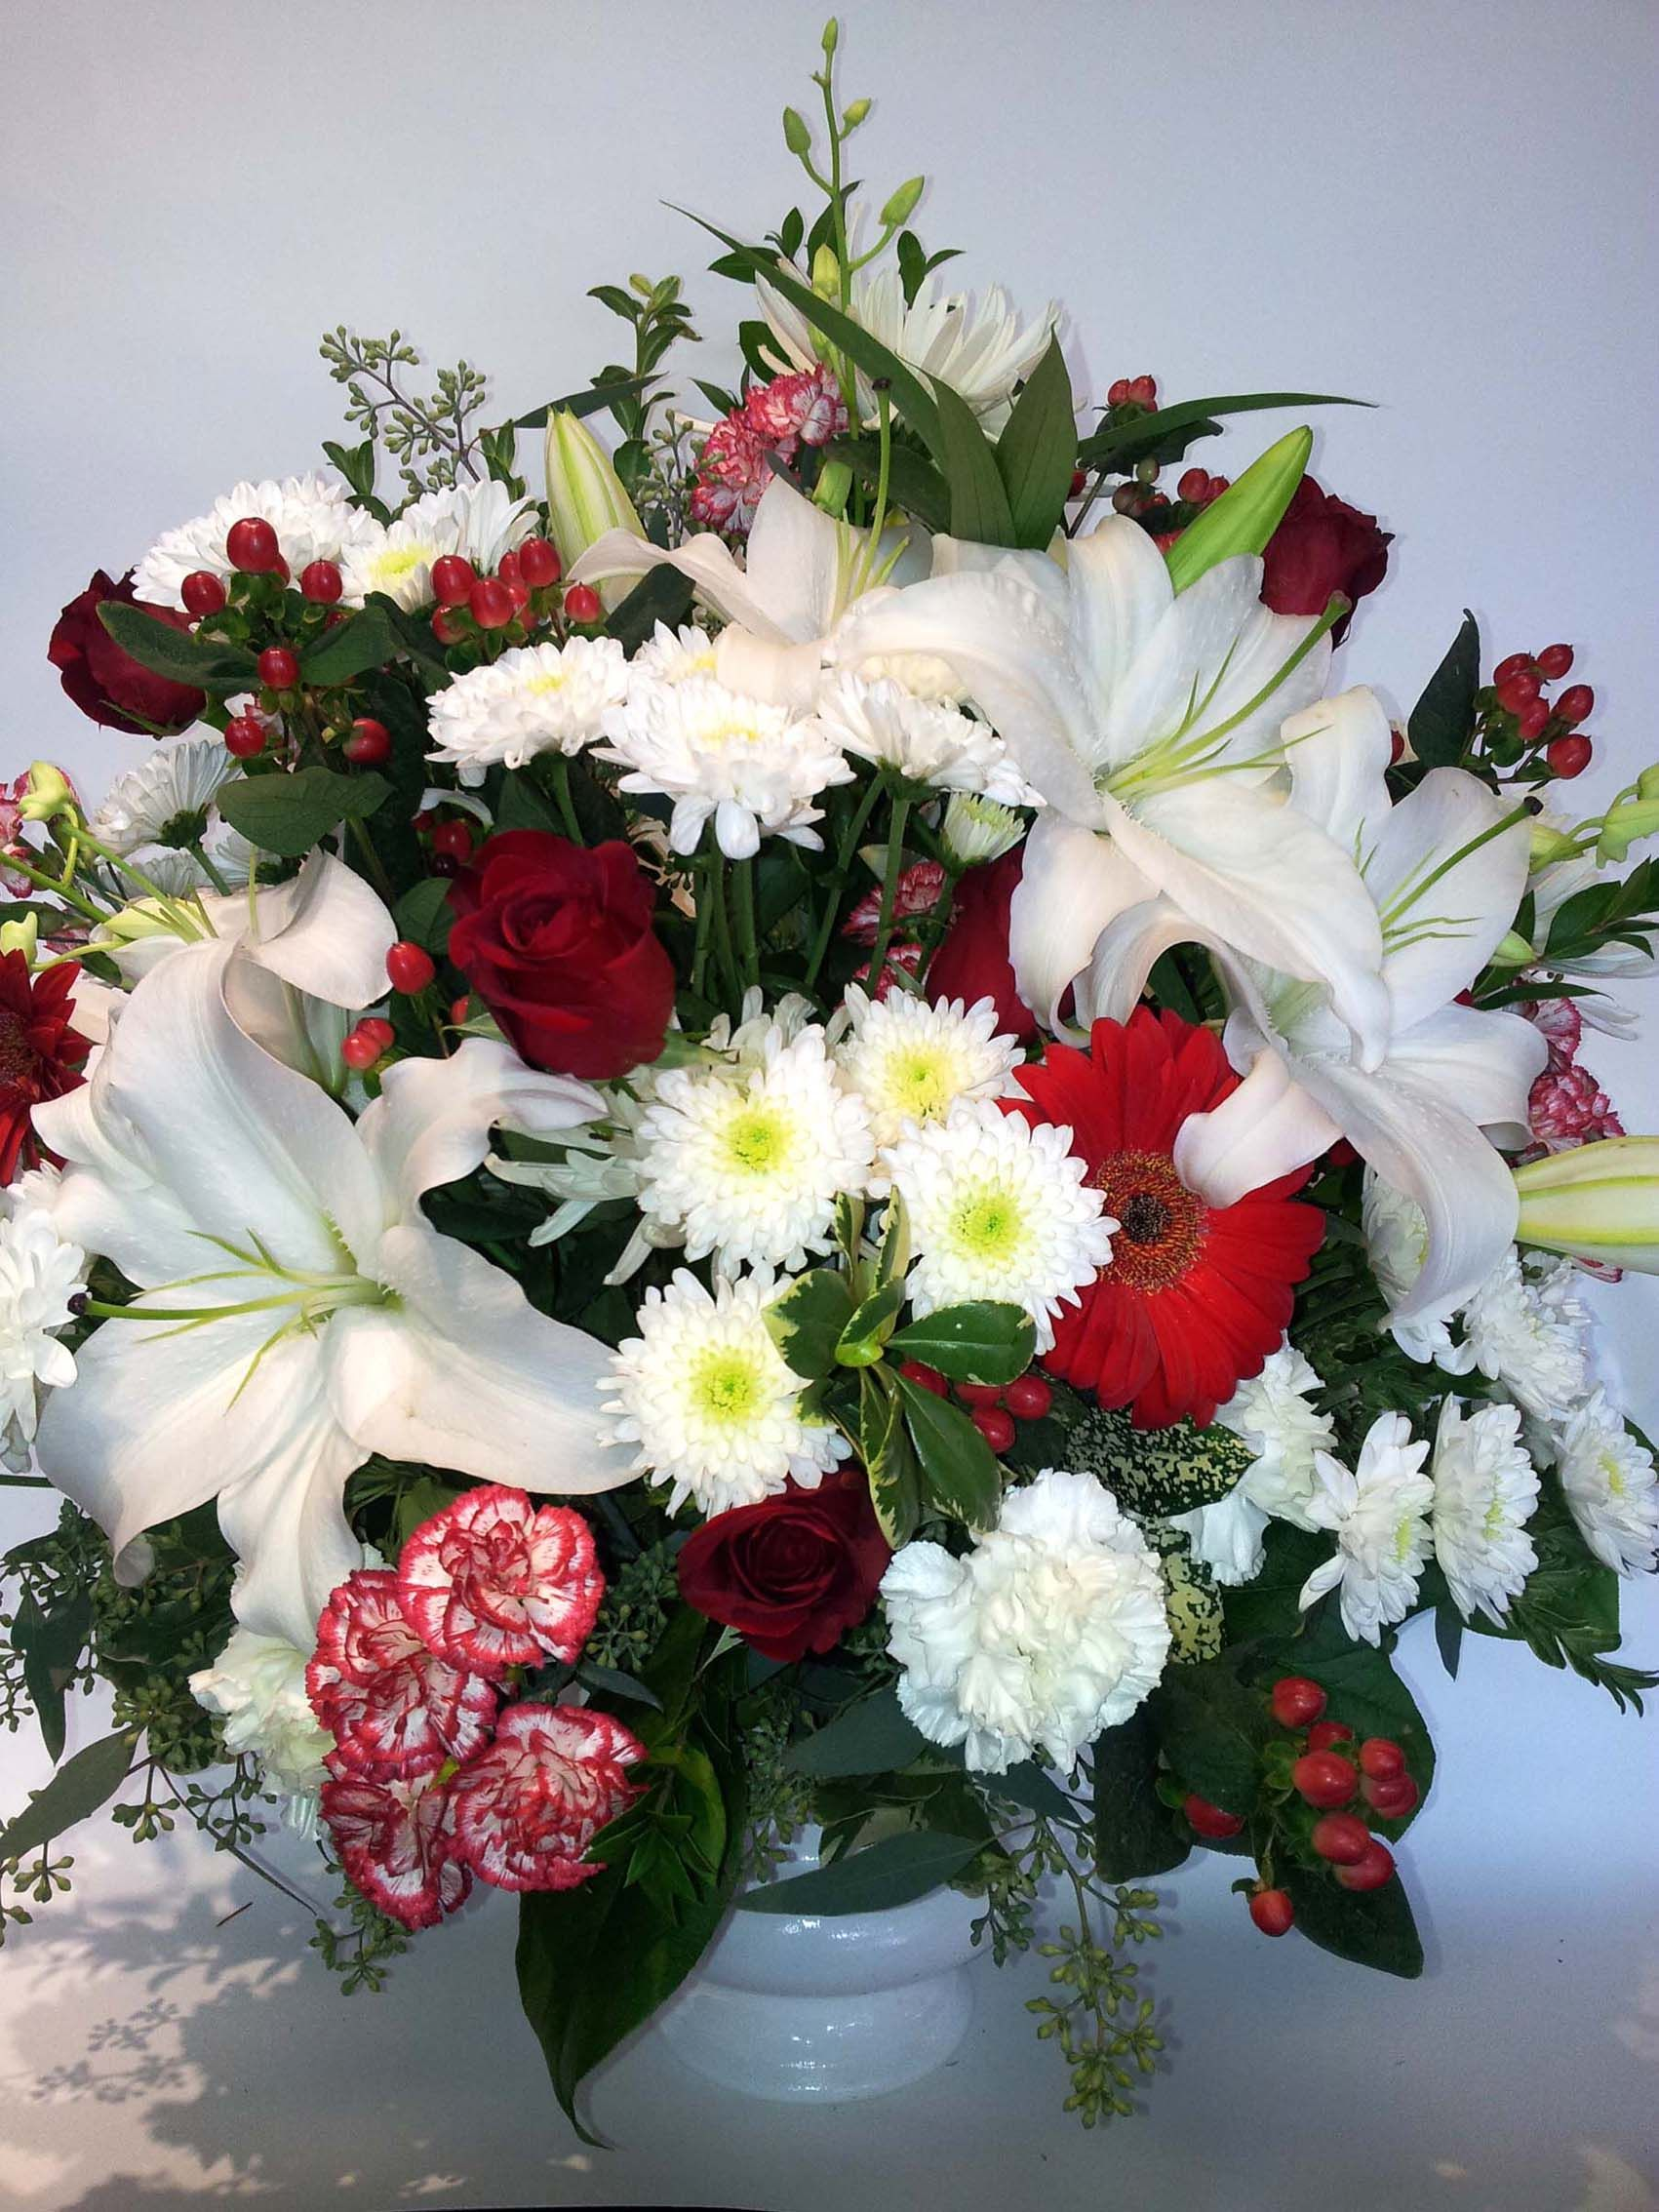 Sympathy arrangement red and white funeral flowers httpwww sympathy arrangement red and white funeral flowers httpwww izmirmasajfo